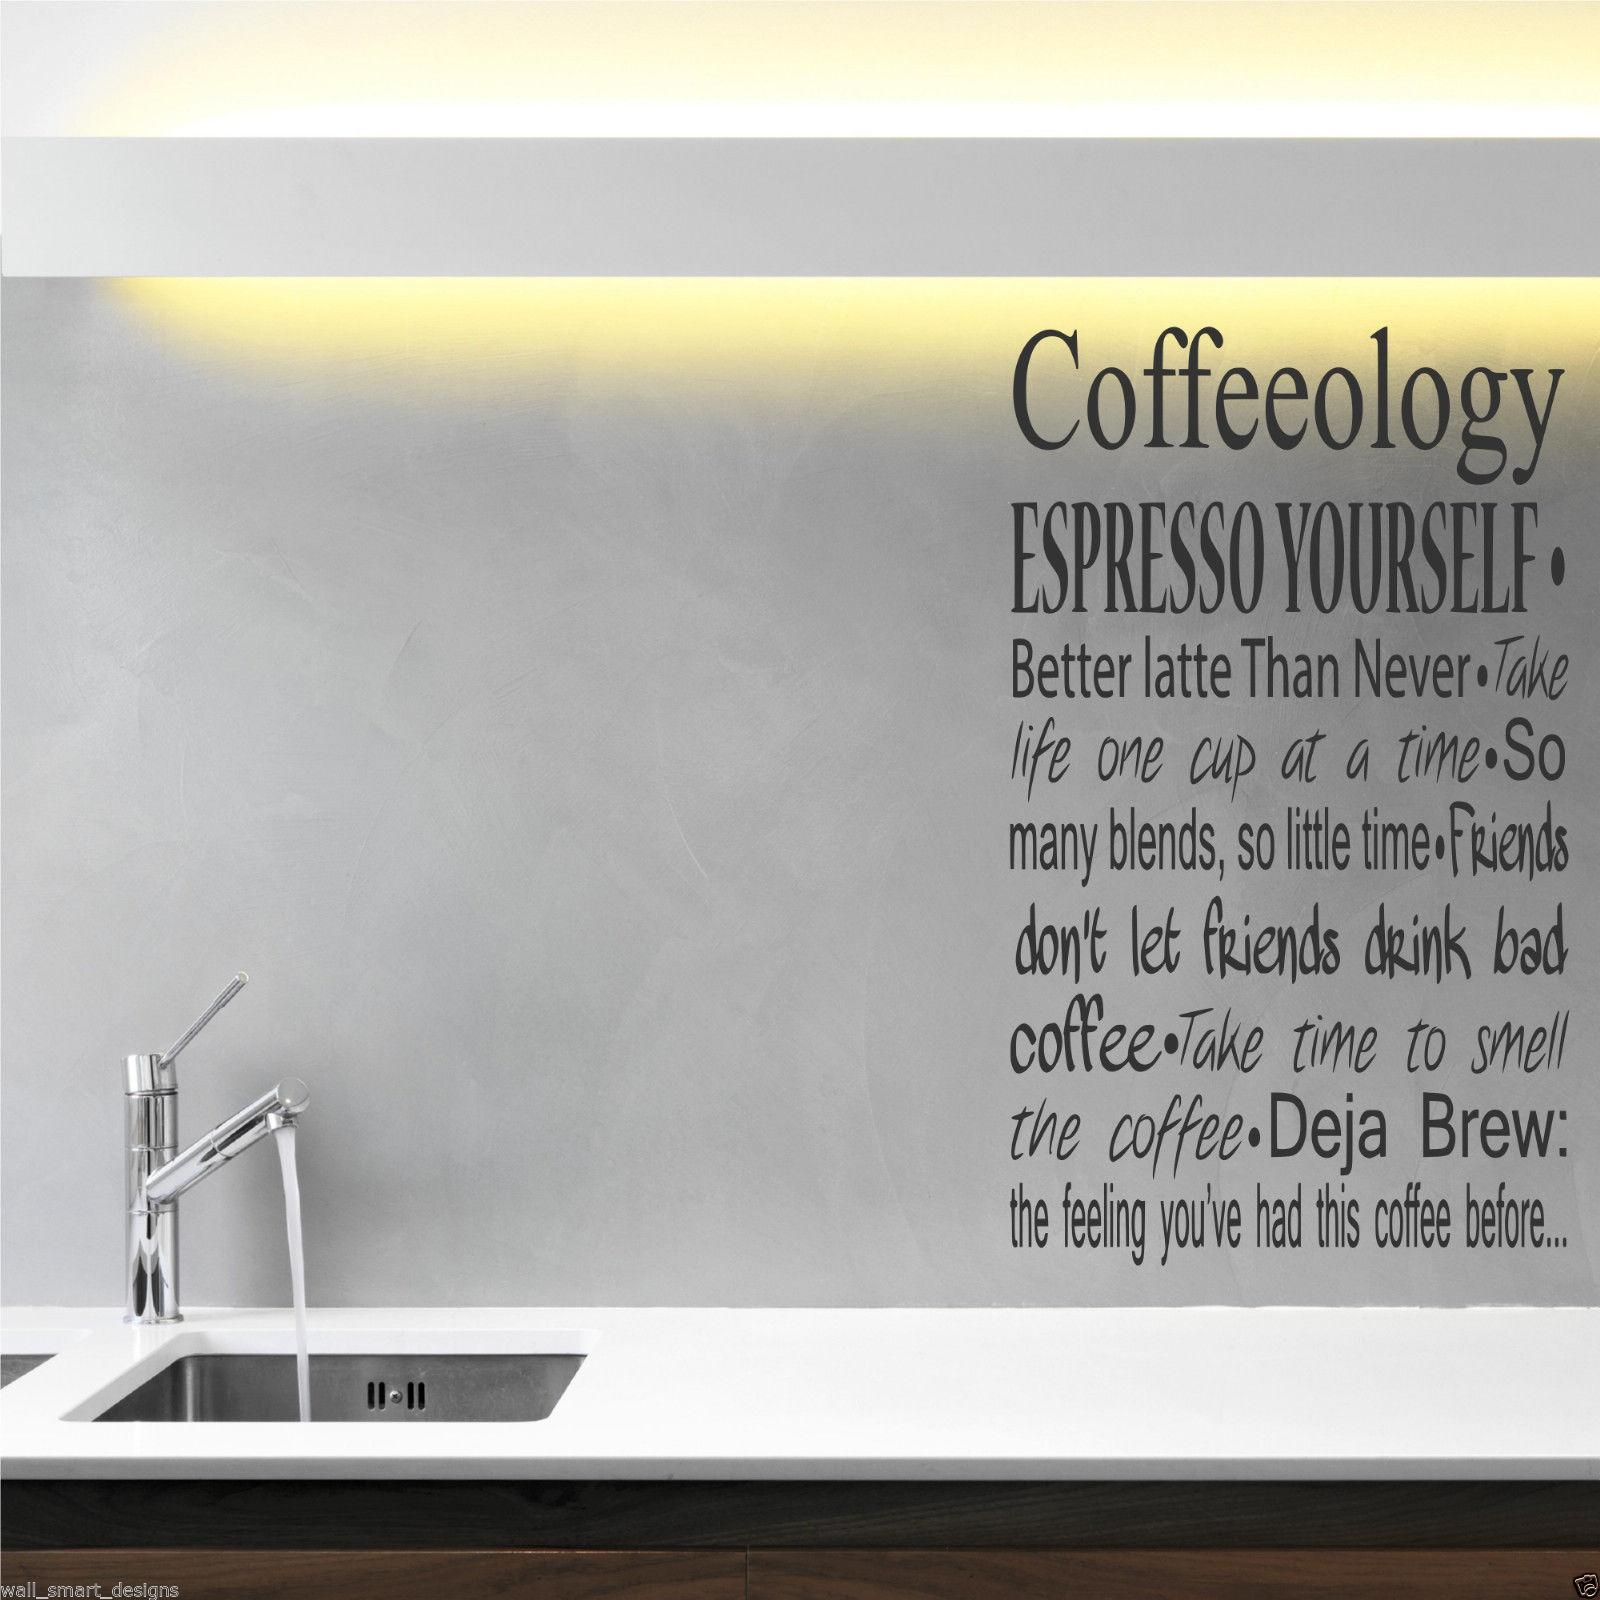 Coffee Coffeeology Kitchen Wall Art Sticker Quote Decal Mural Throughout Cafe Latte Kitchen Wall Art (View 16 of 20)